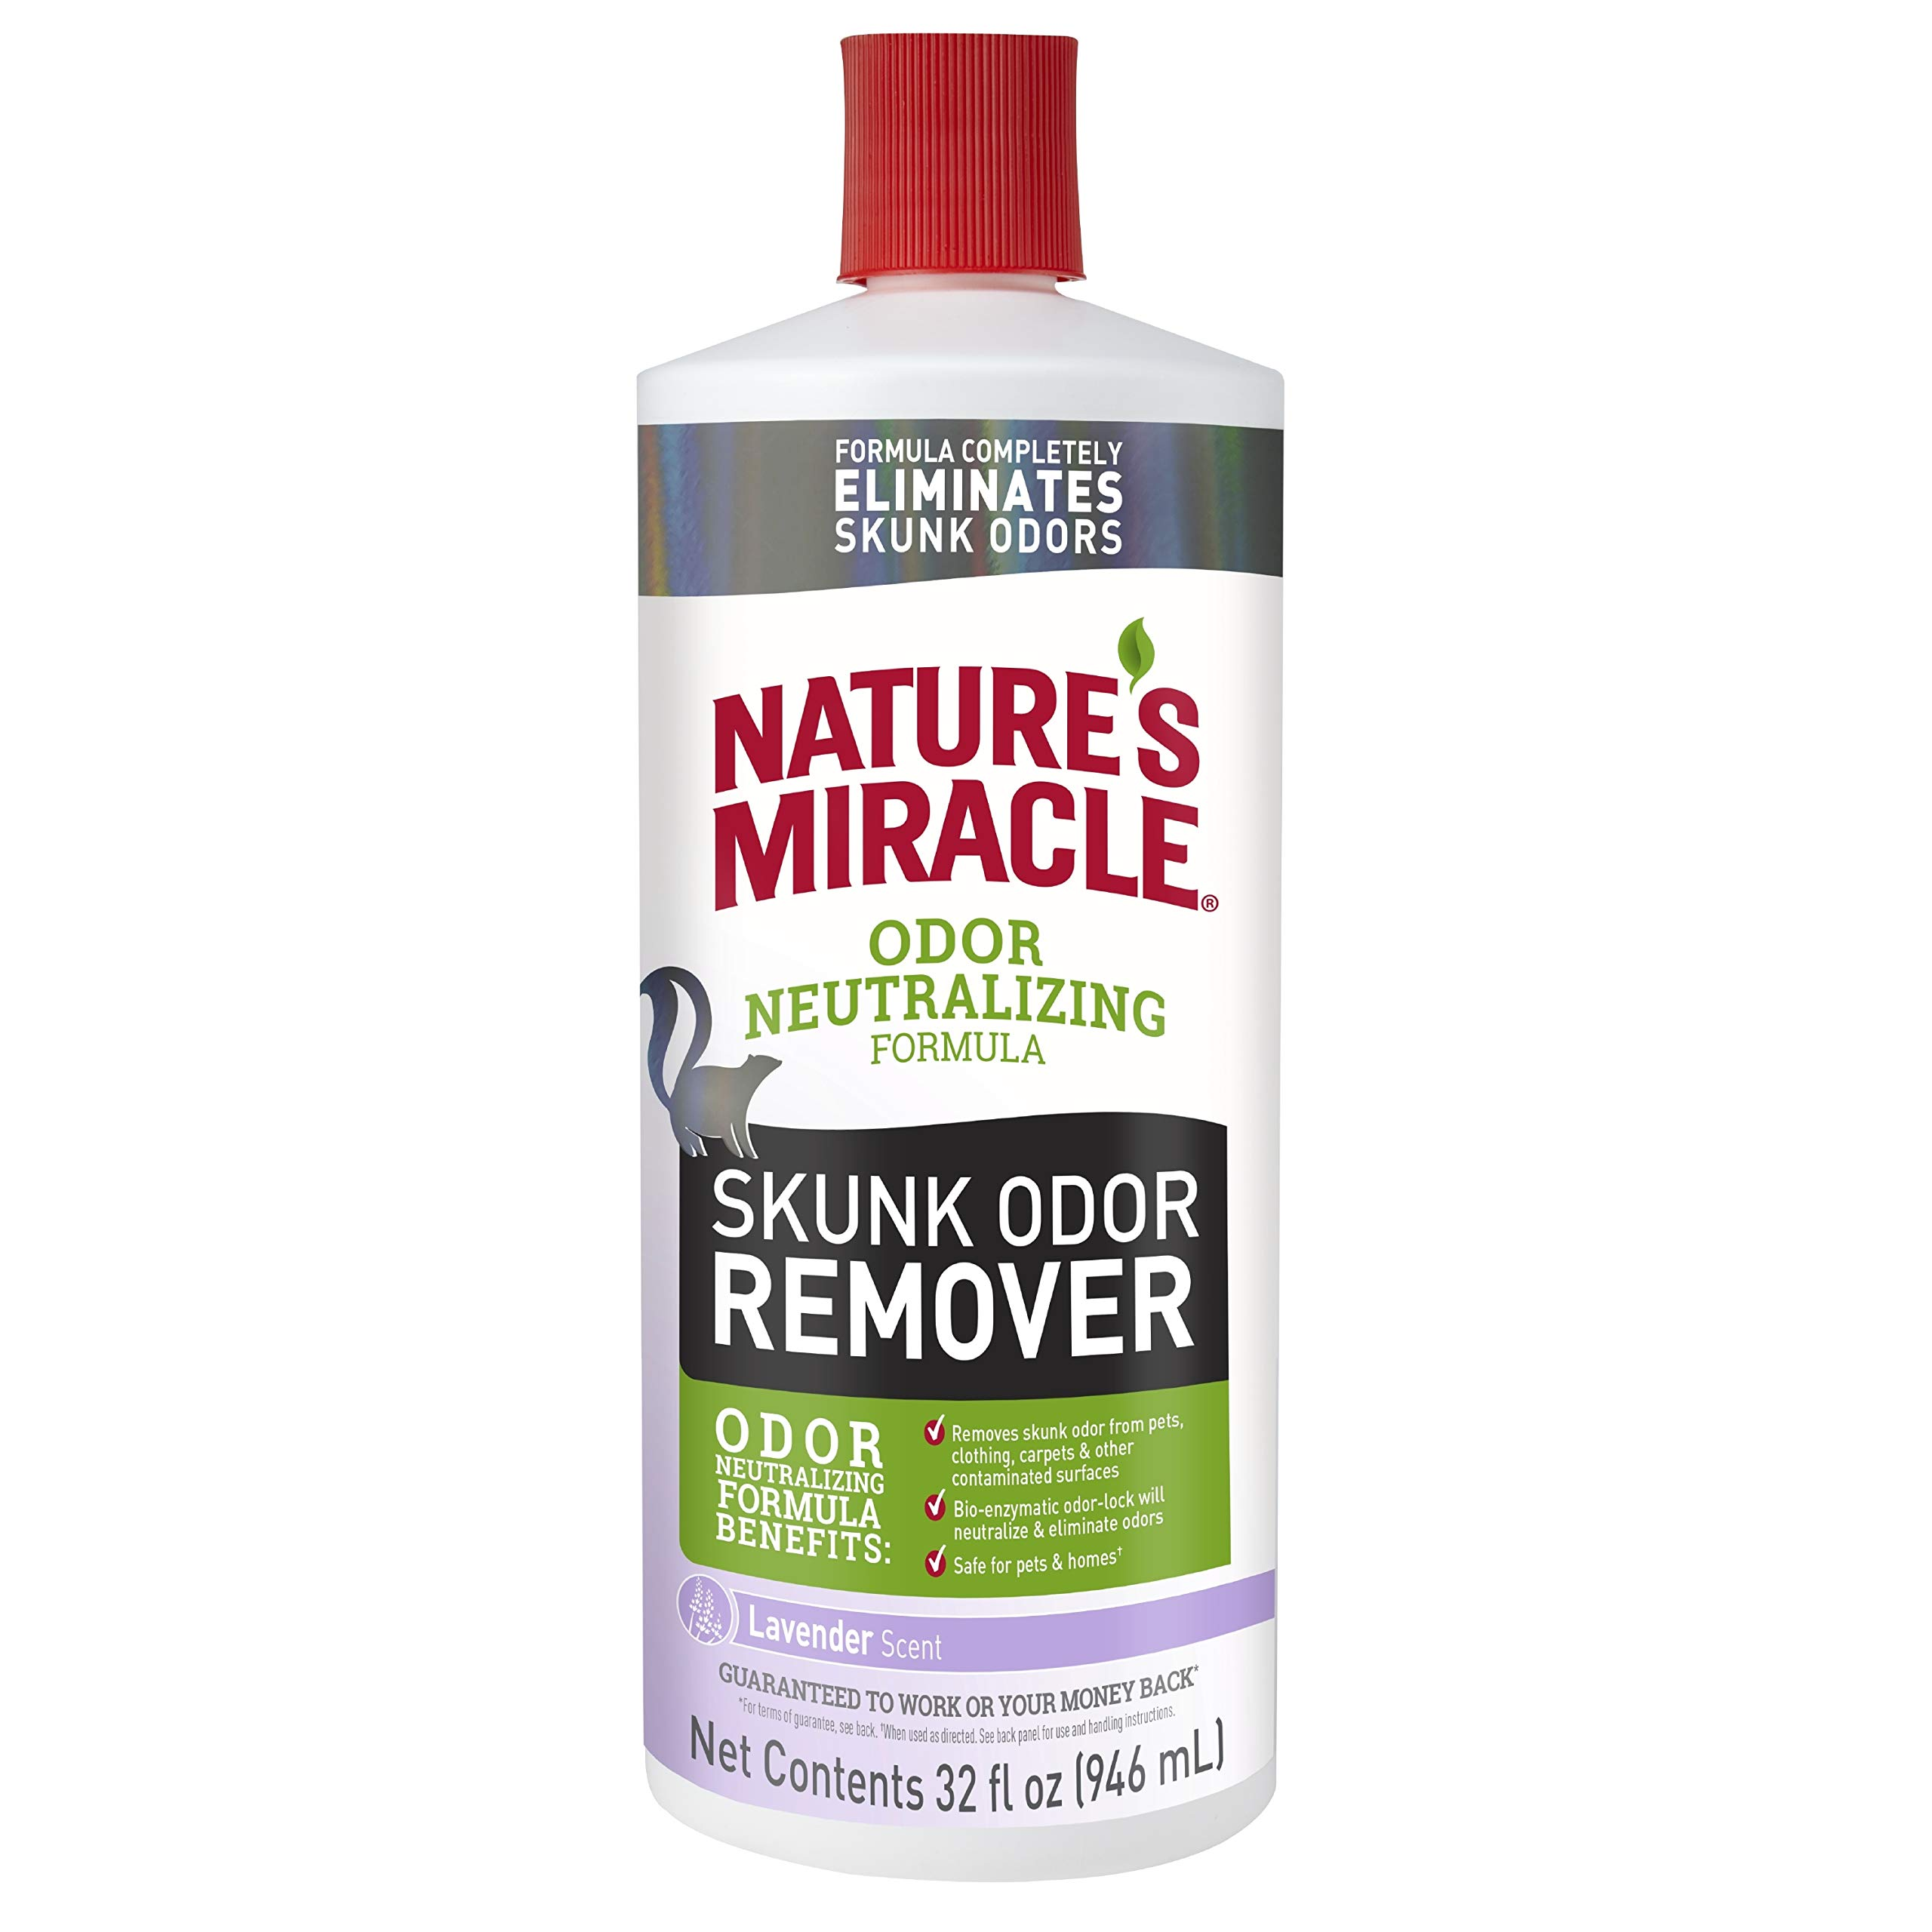 Nature's Miracle P-98220 Nature's Miracle Skunk Odor Remover Odor Neutralizing Formula, 32 fl. oz., Lavender Scent